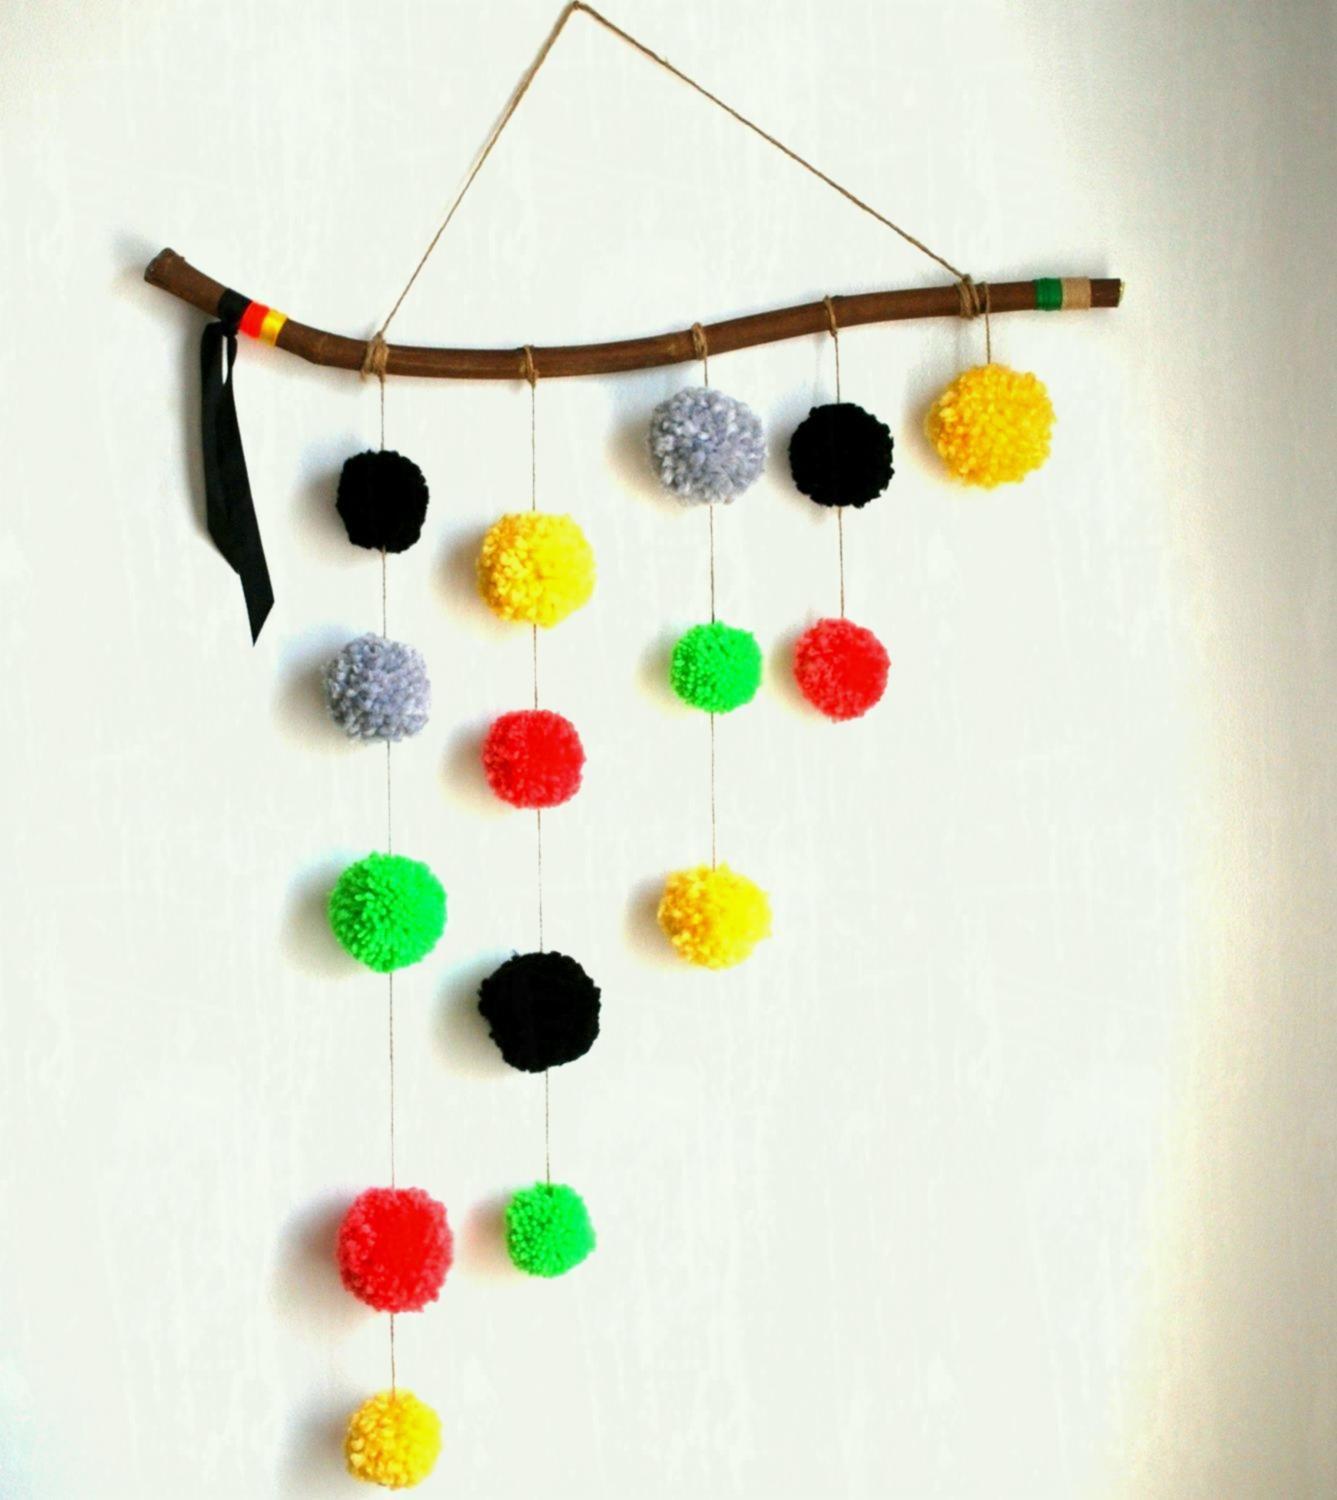 Terrific Wall Hanging Ideas With Waste Material For School